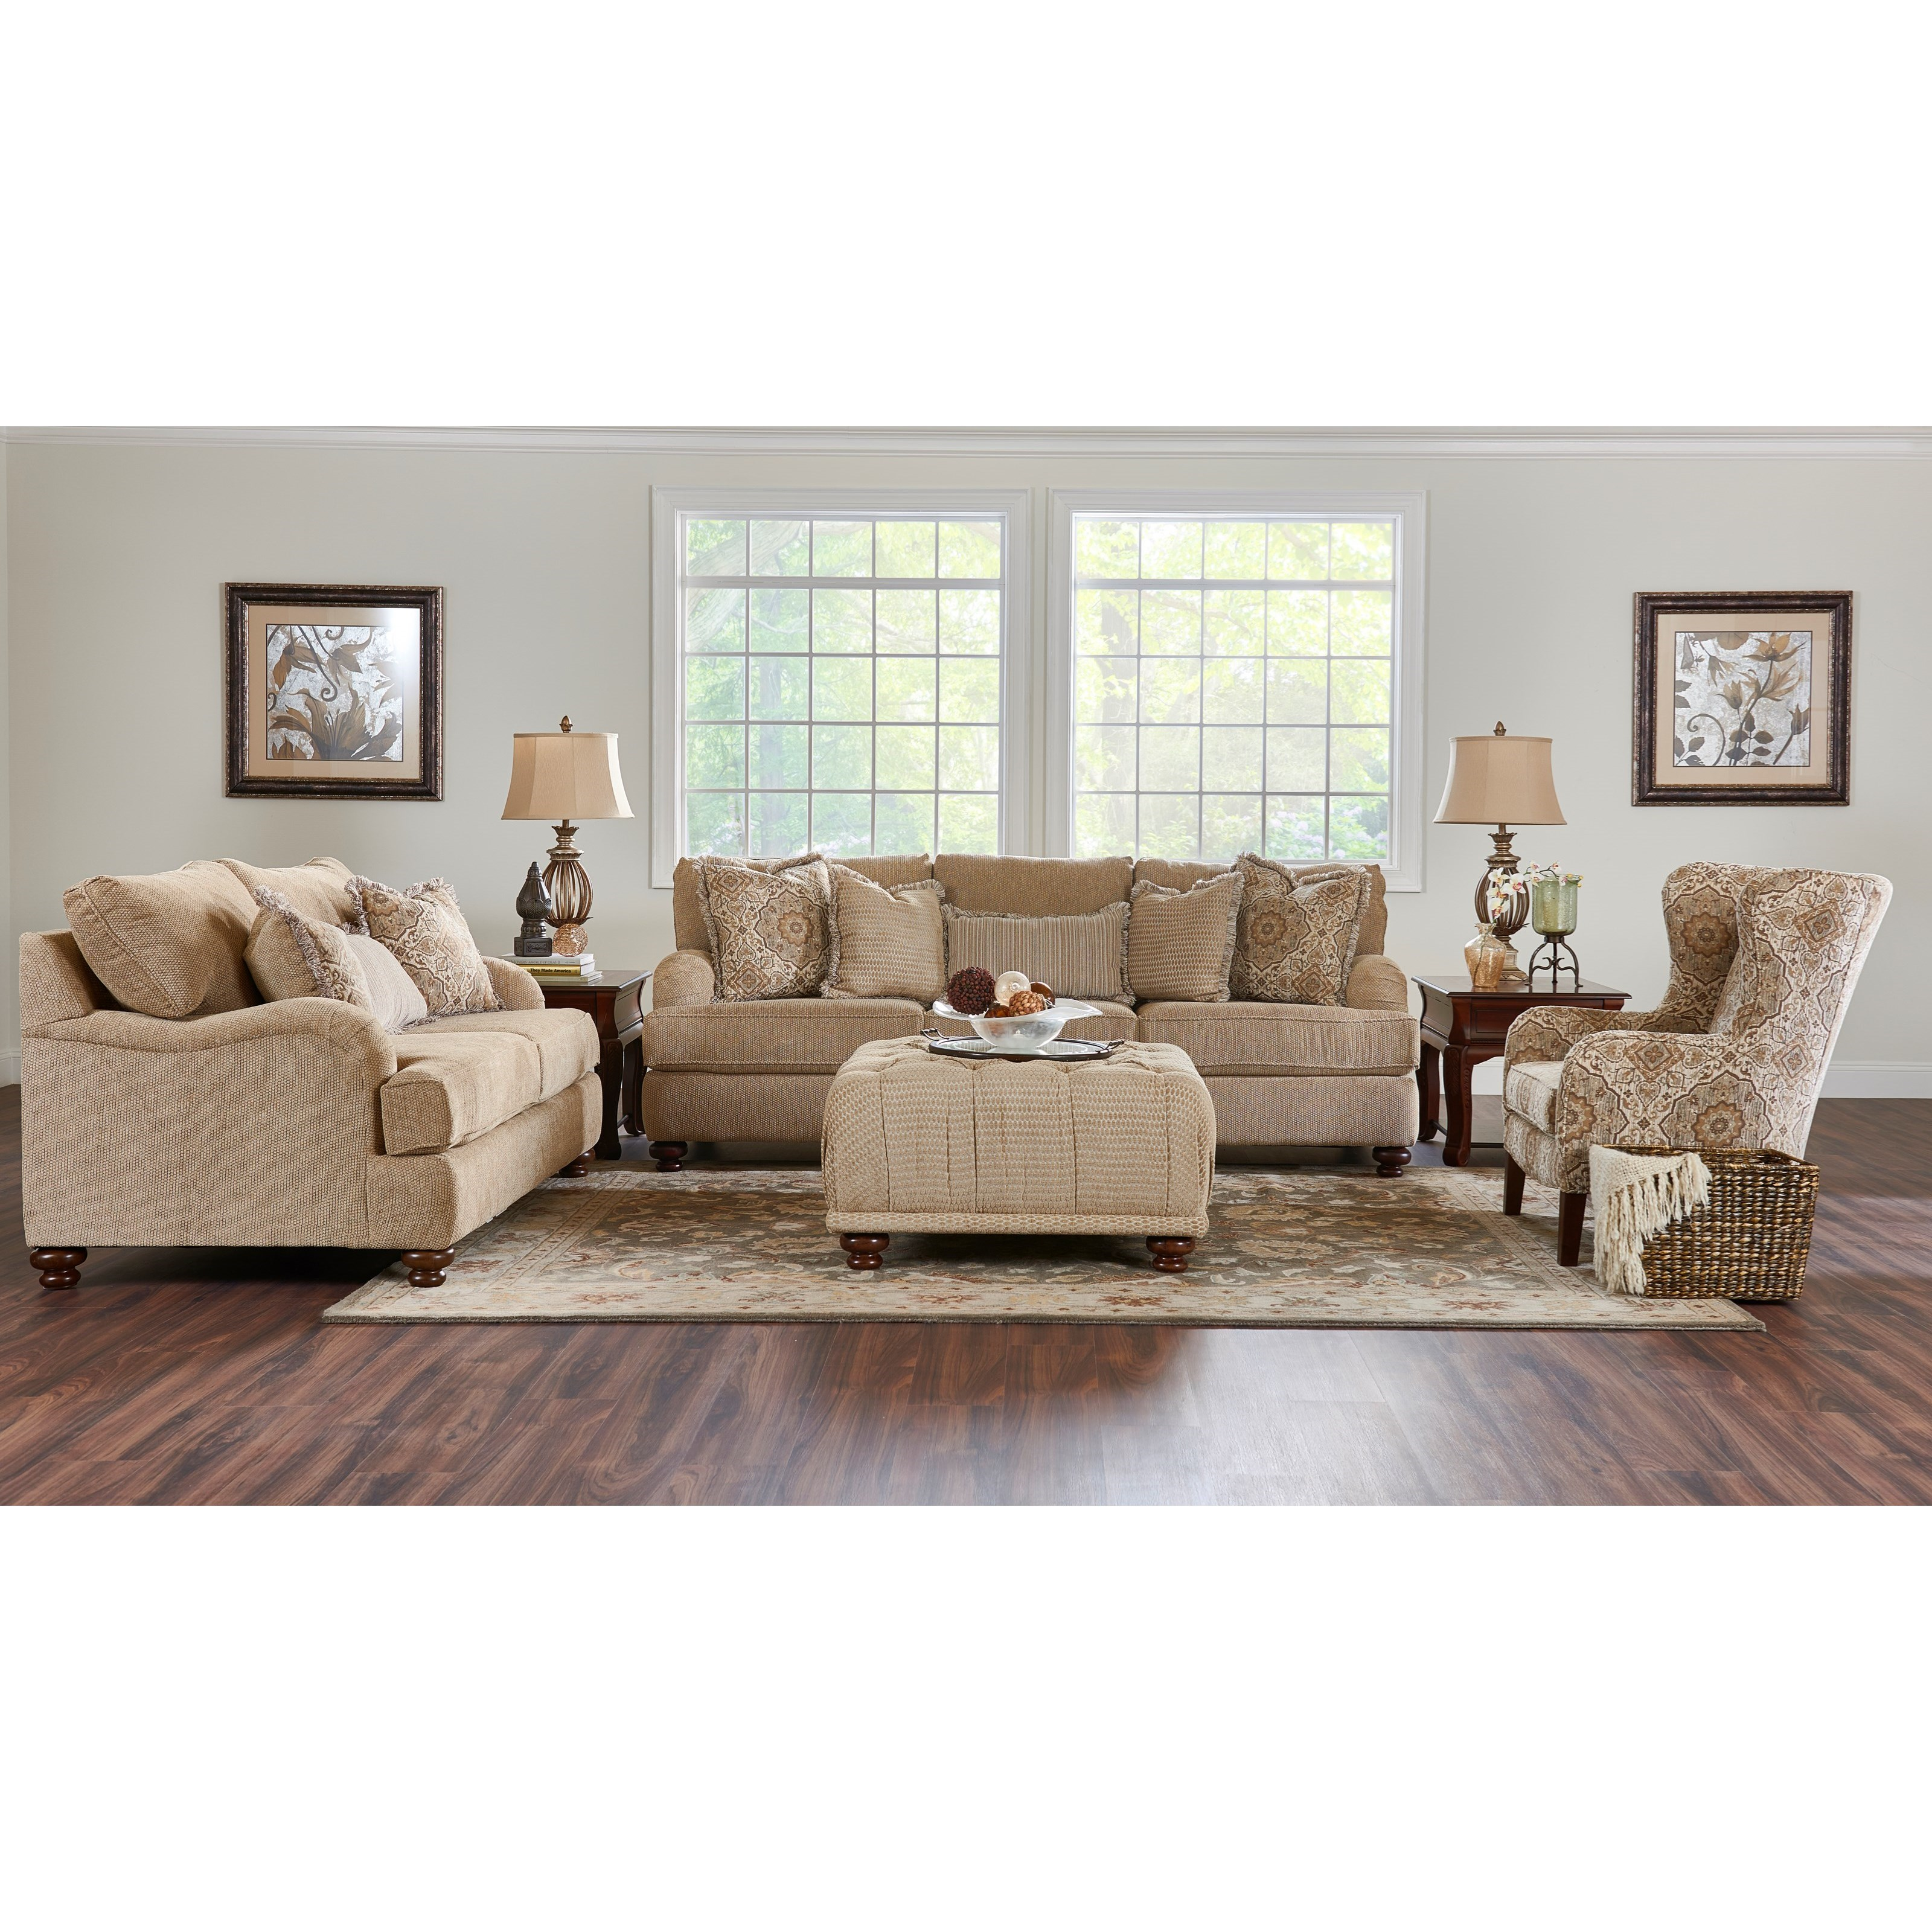 Klaussner Declan Living Room Group Value City Furniture Stationary Living Room Groups